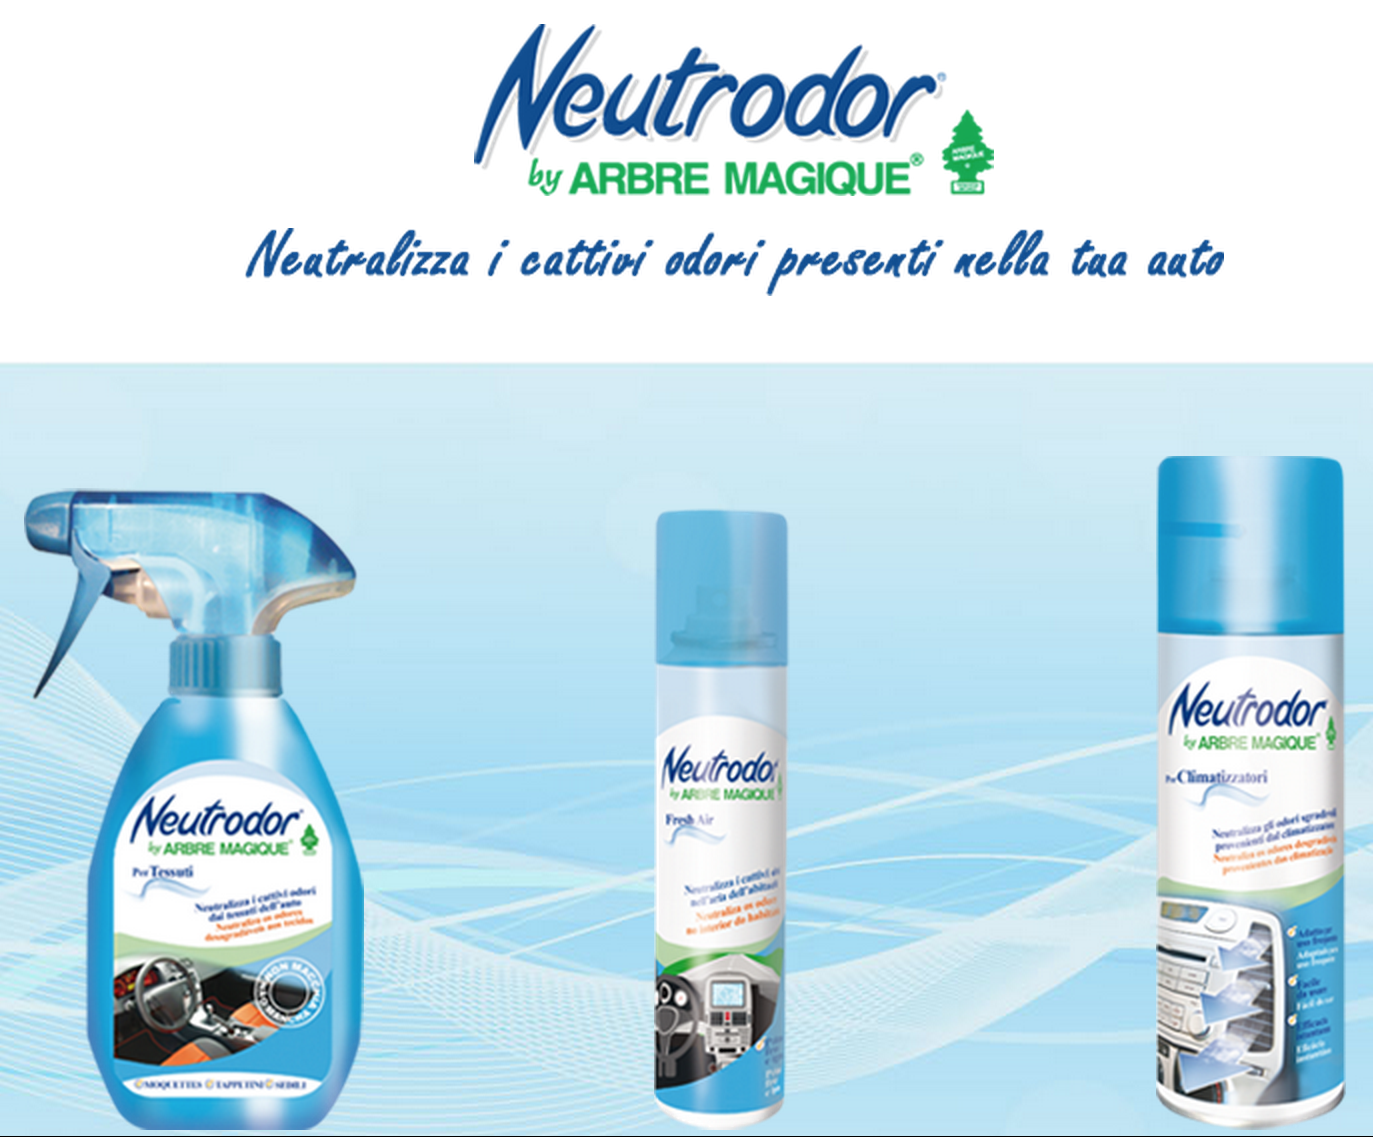 Neutrodor By ArbreMagique